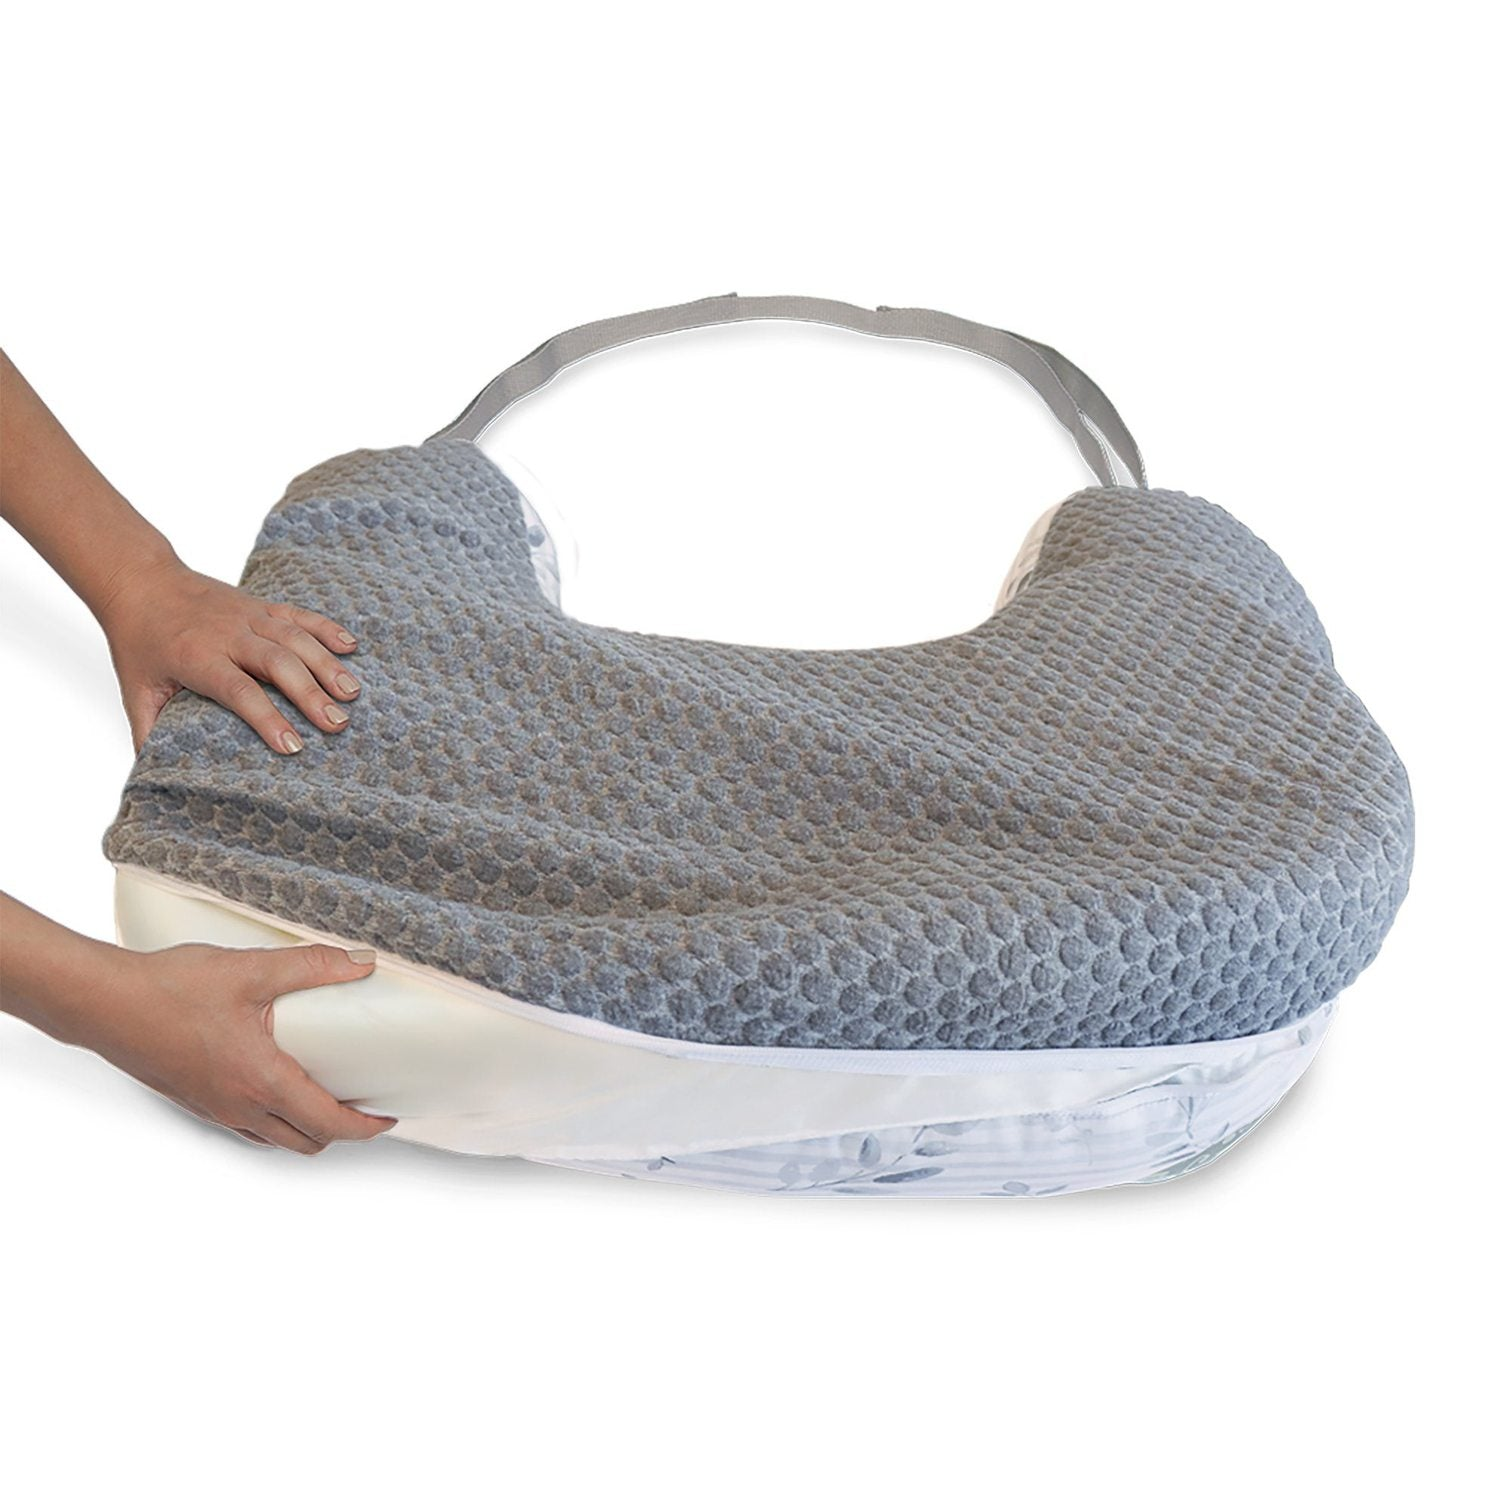 Boppy Pillow - Best Latch